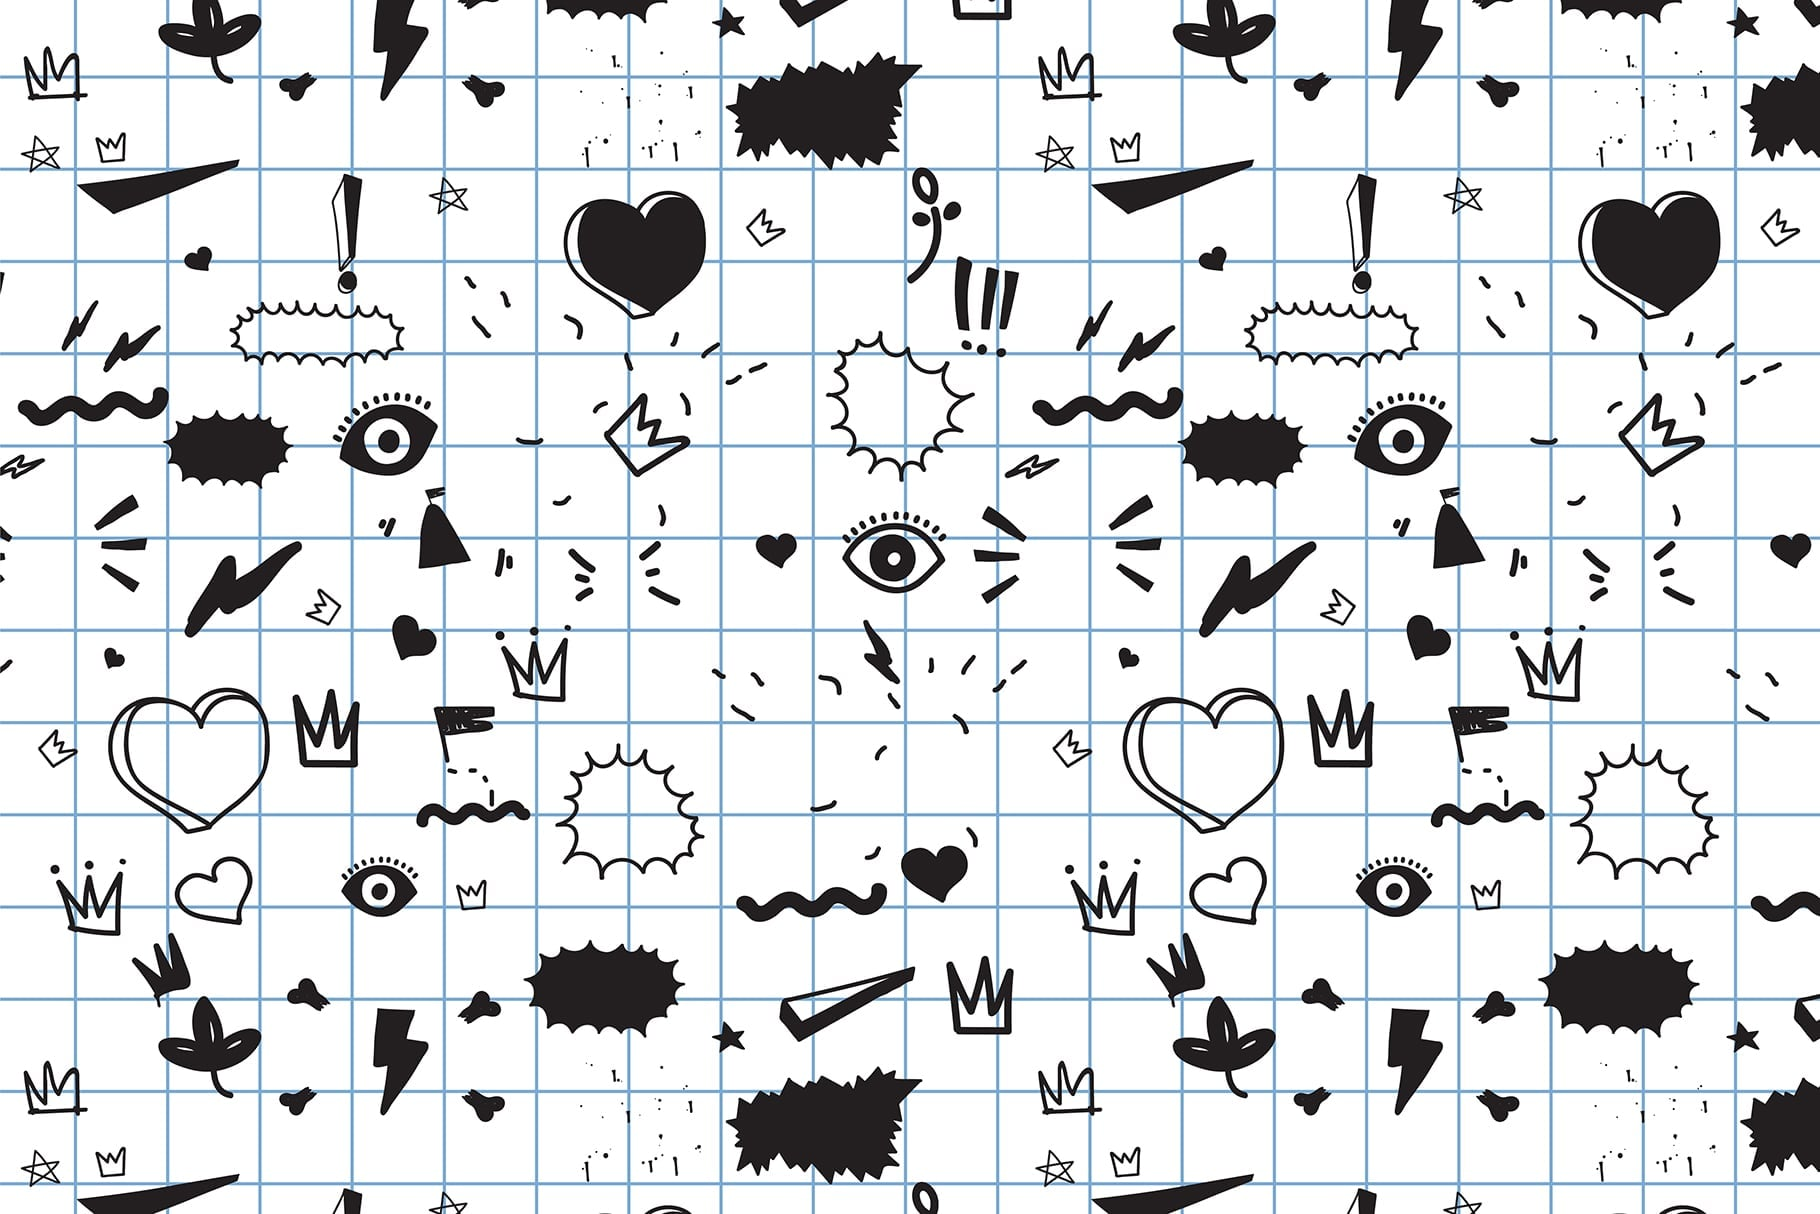 170 Doodles + Elements + Patterns - $25 Only - Preview 15 min